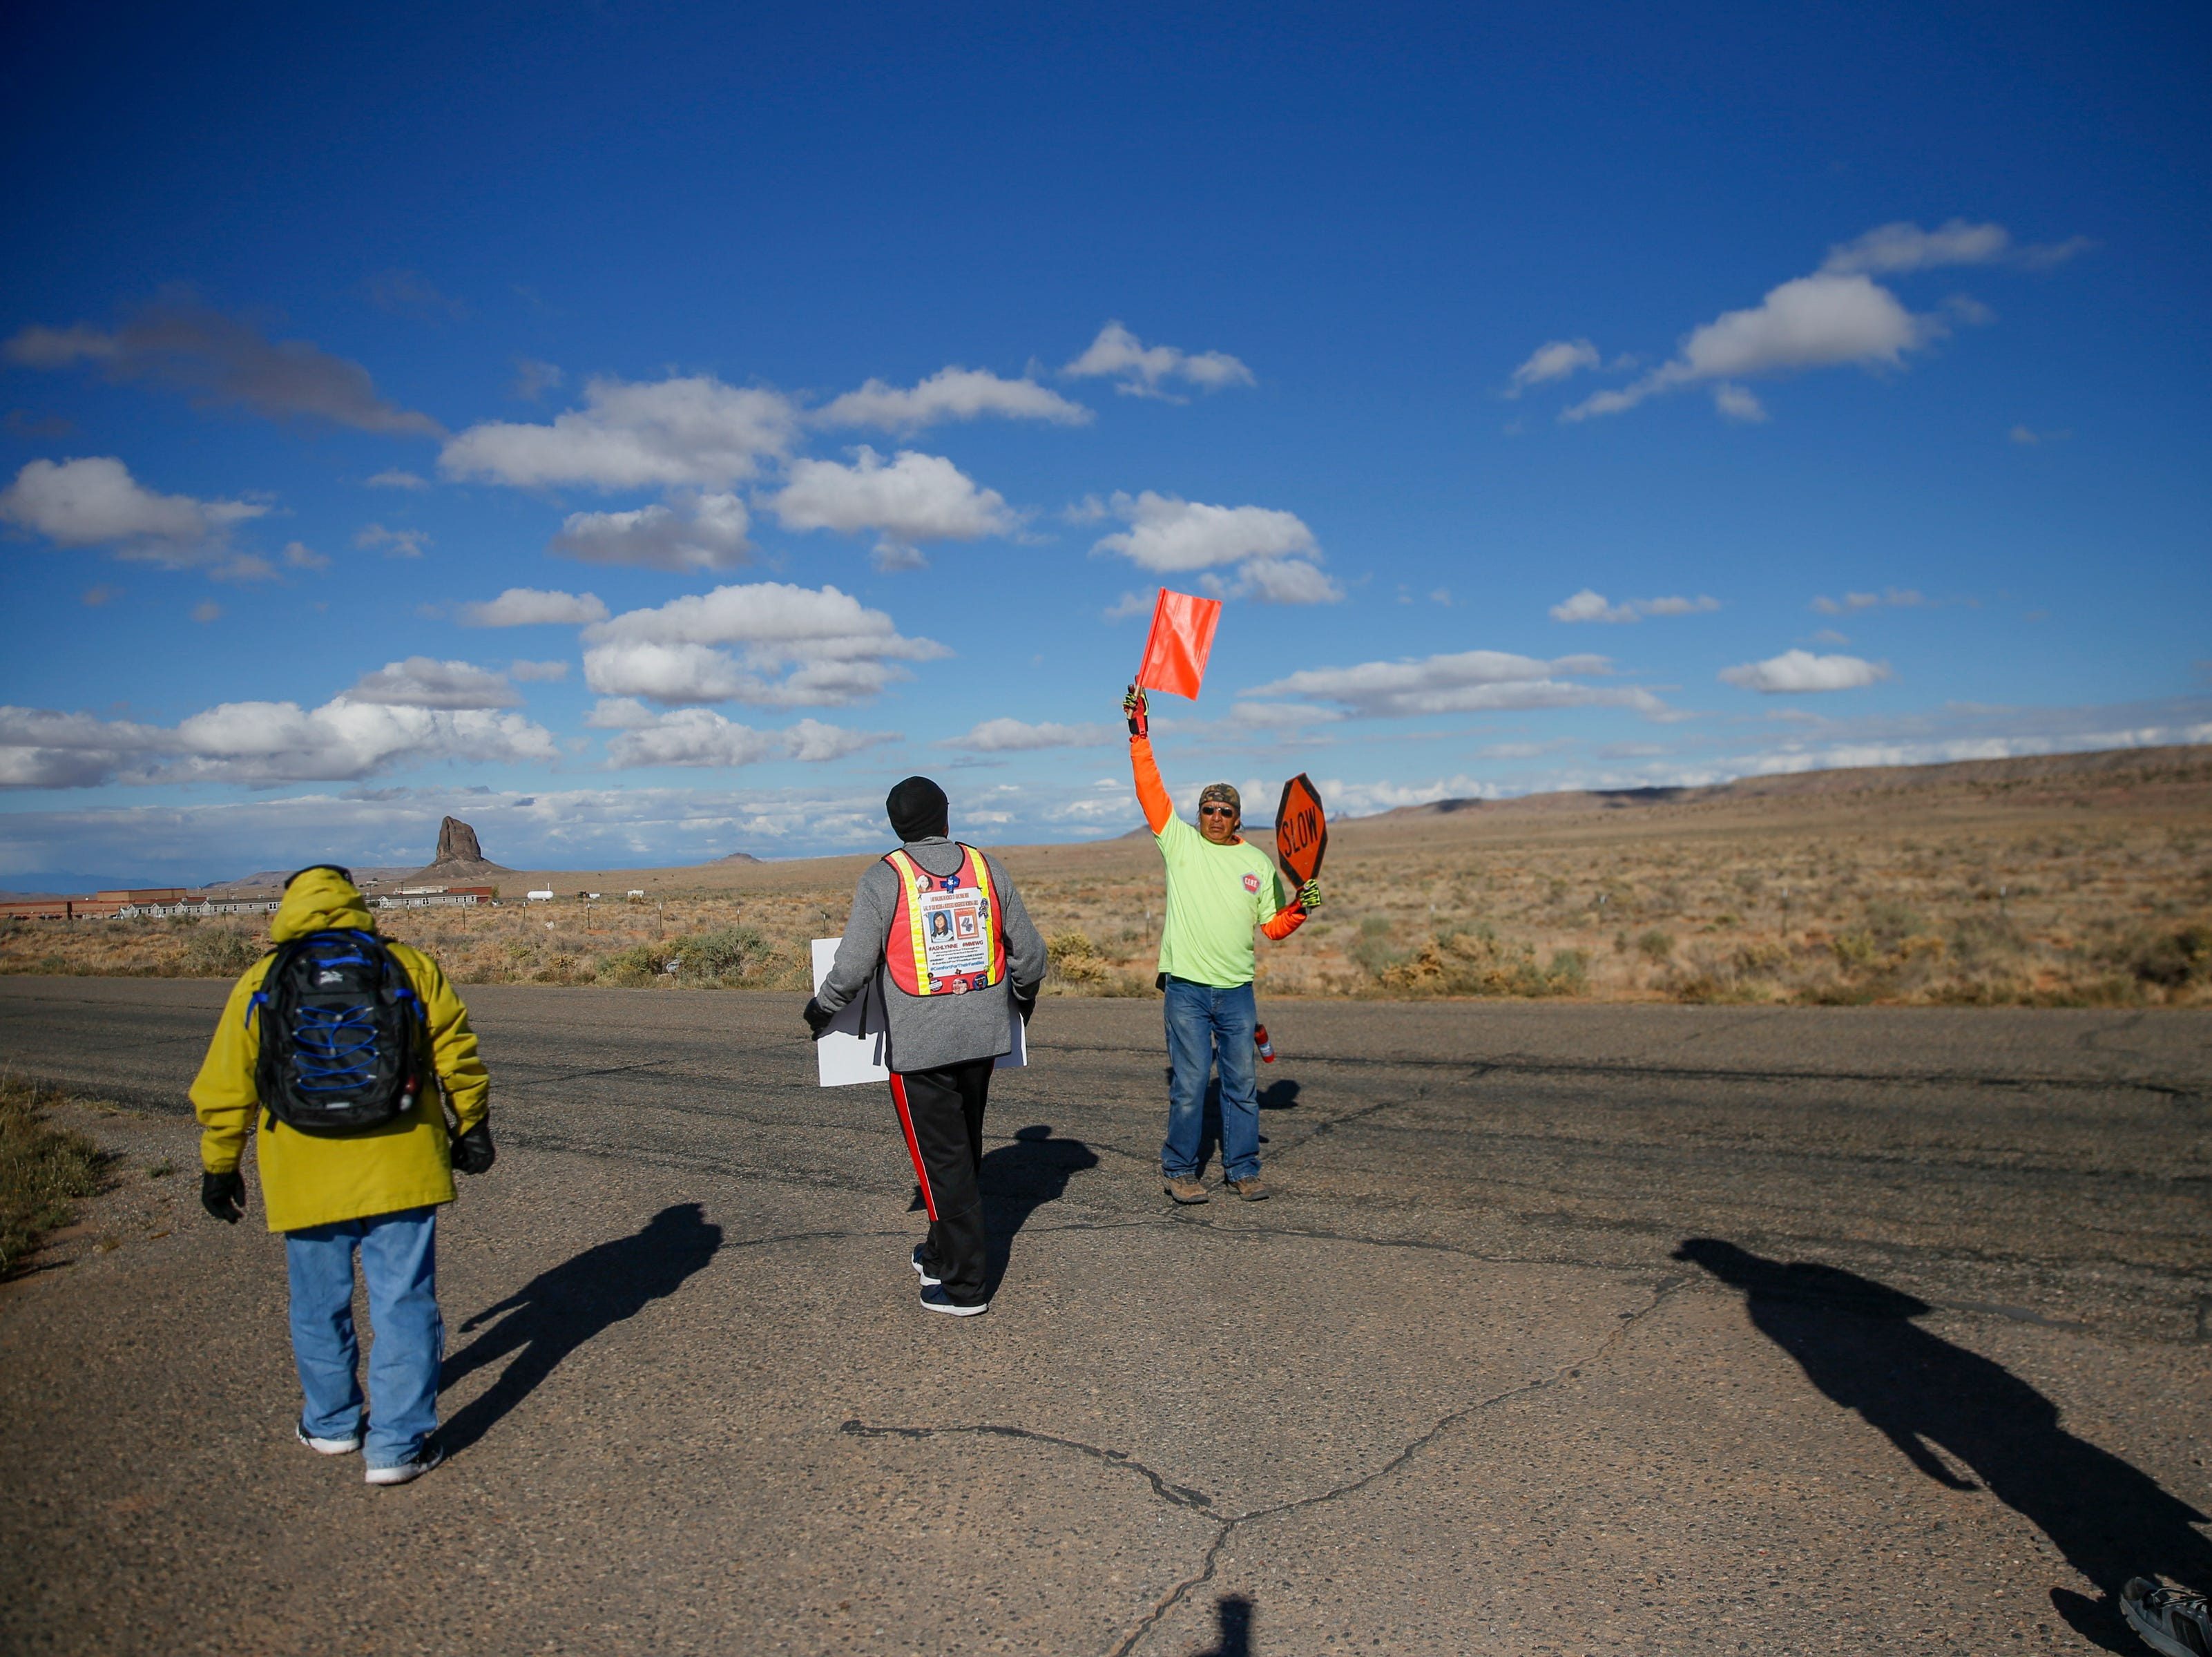 At center Darryl Begay a member of Red Valley Chapter's Community Emergency Response Team provides safety for the walkers Thursday, Oct. 18, 2018 along Navajo Route 13 in Red Valley, Arizona.